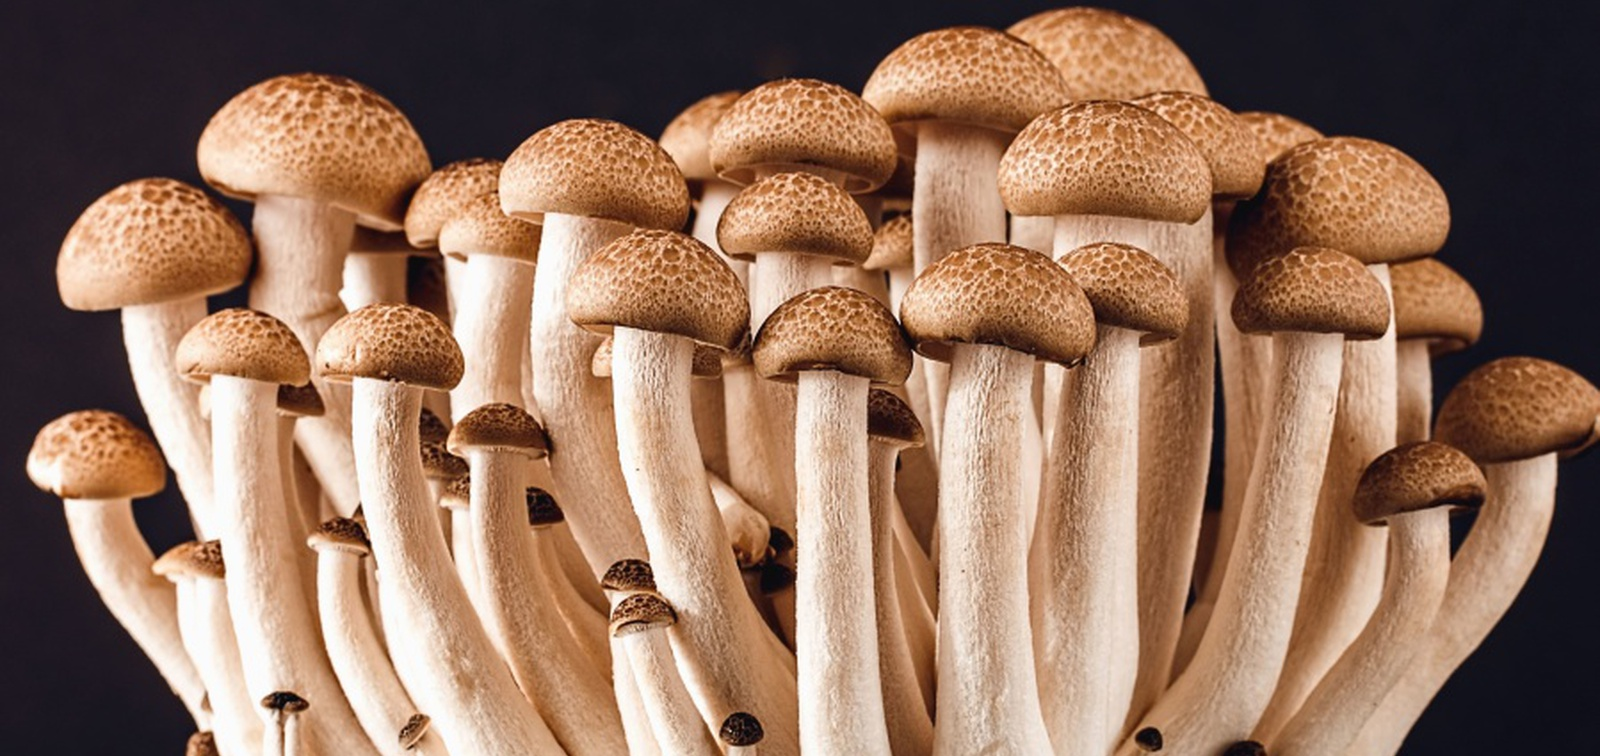 A fungus among us: Food makers cuddle up to the much maligned mushroom